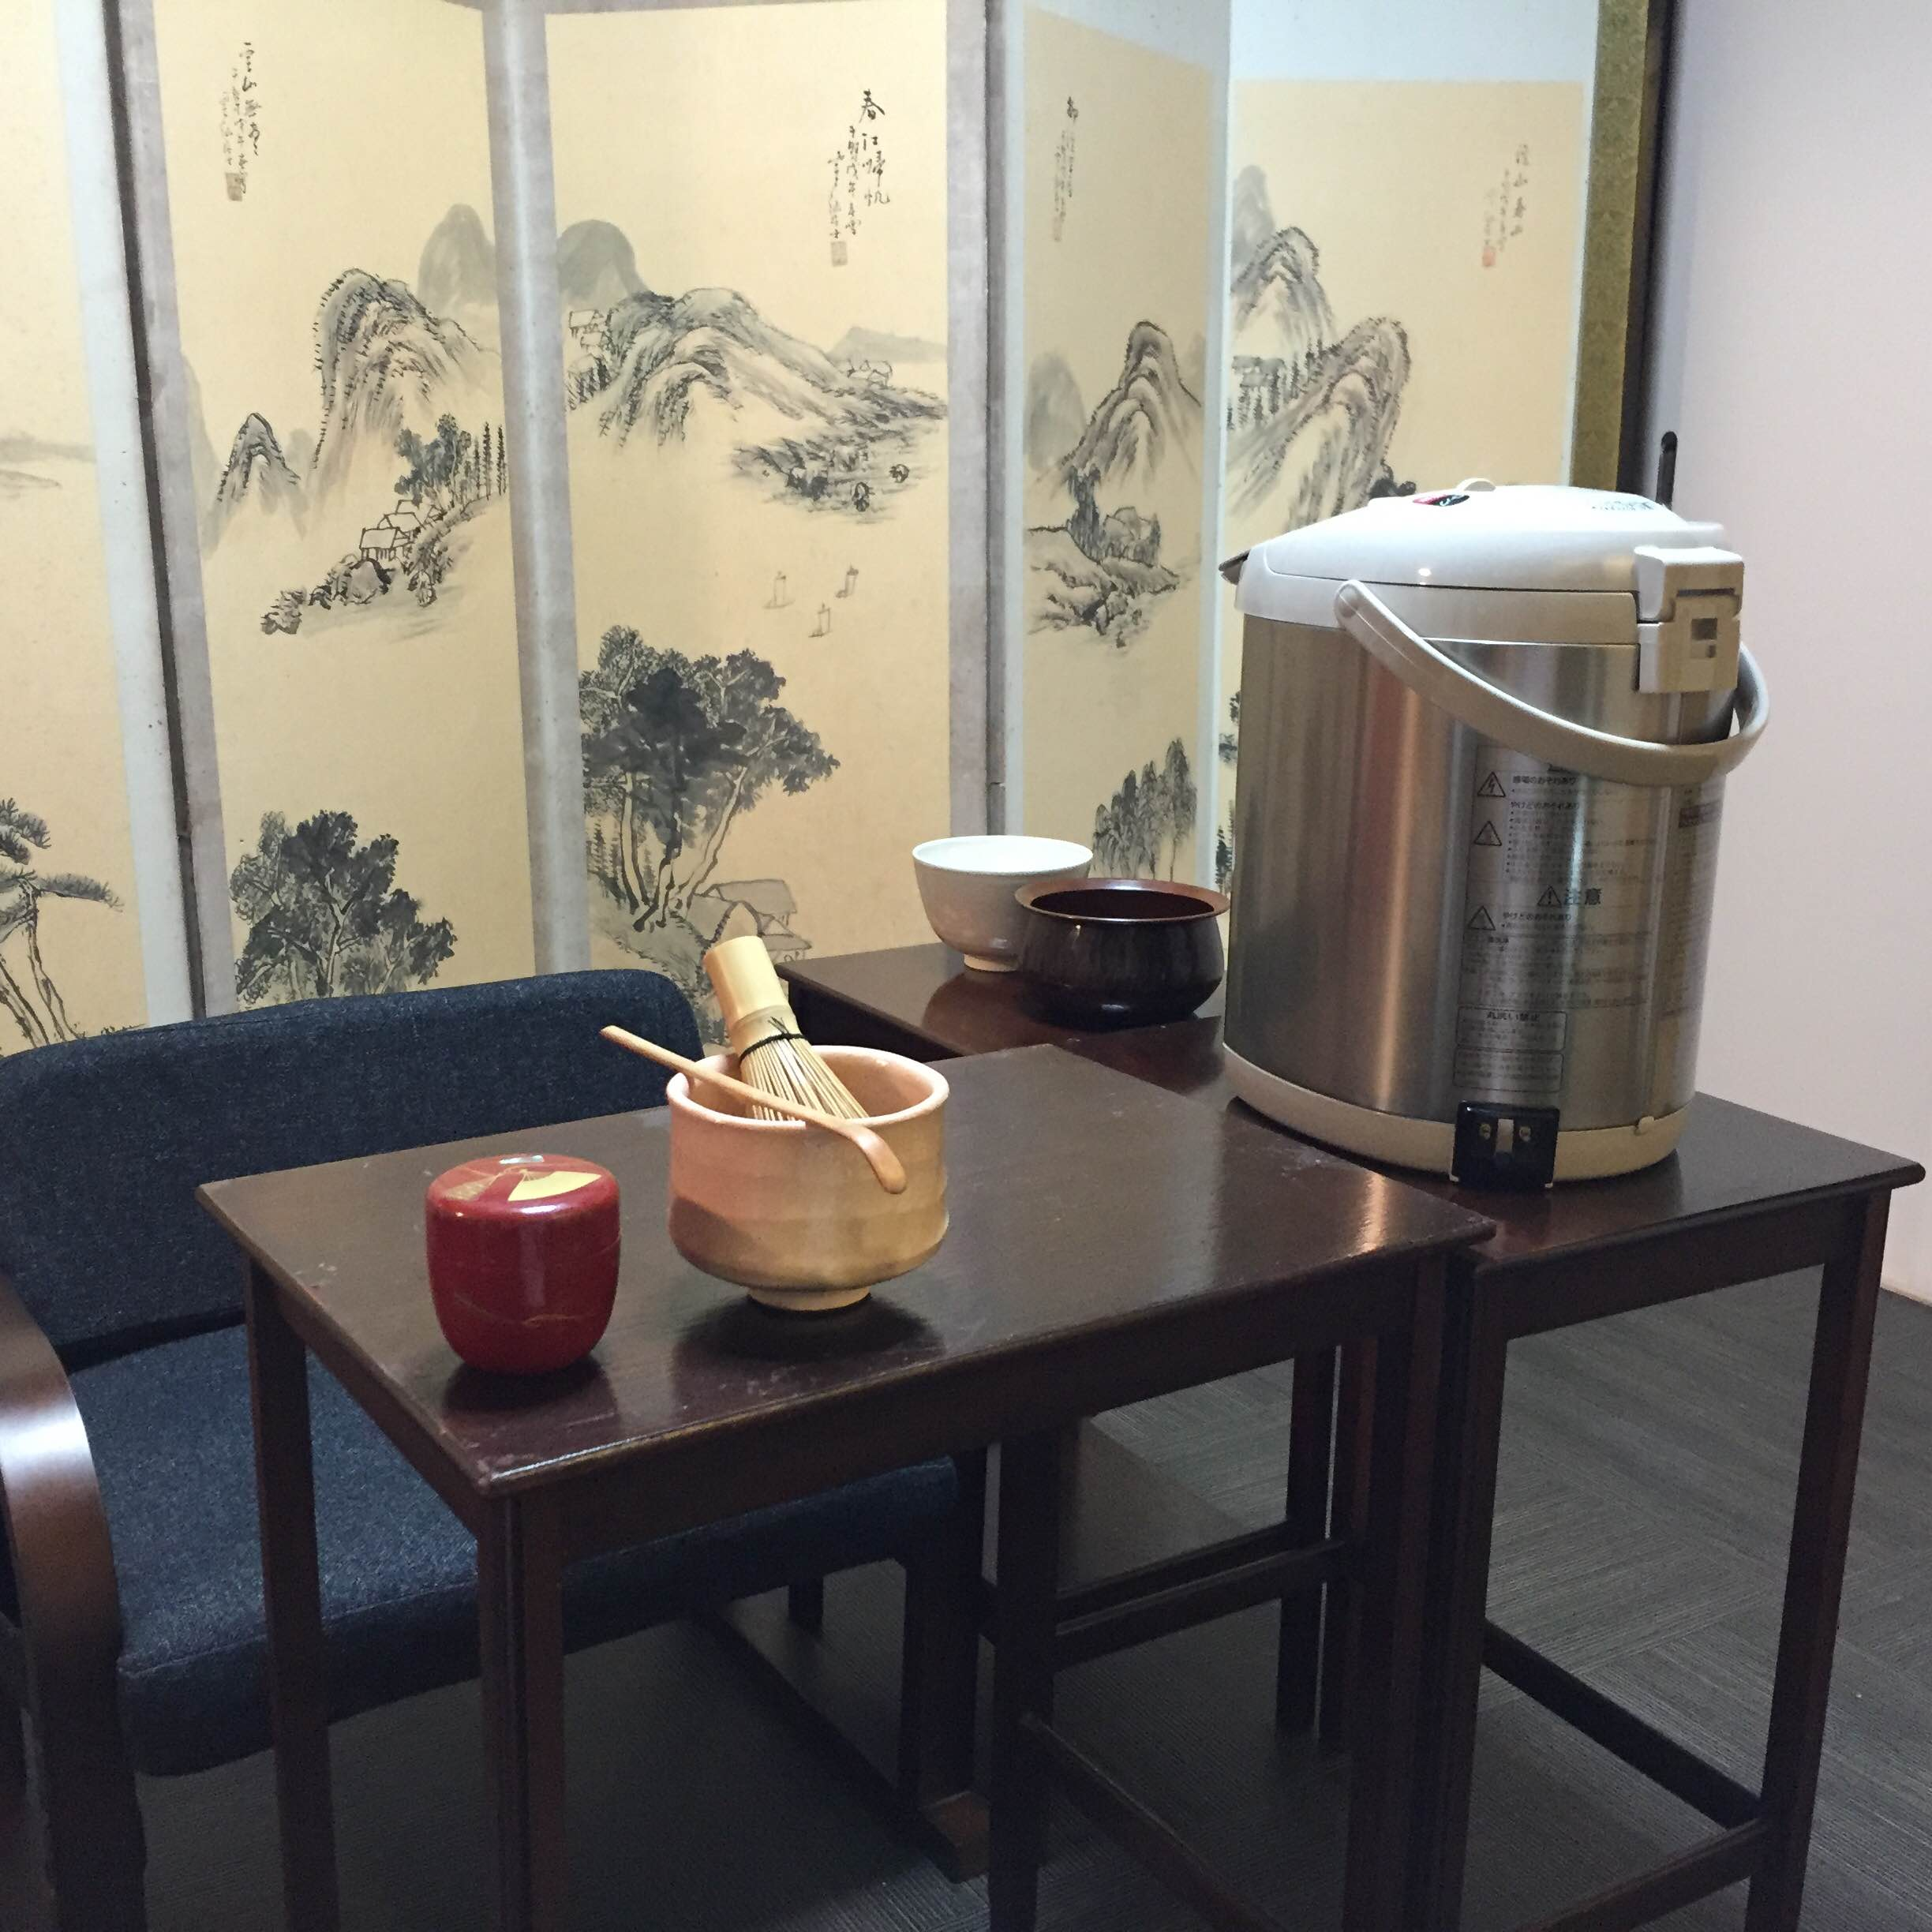 Japanese Tea Ceremony in table and chair style